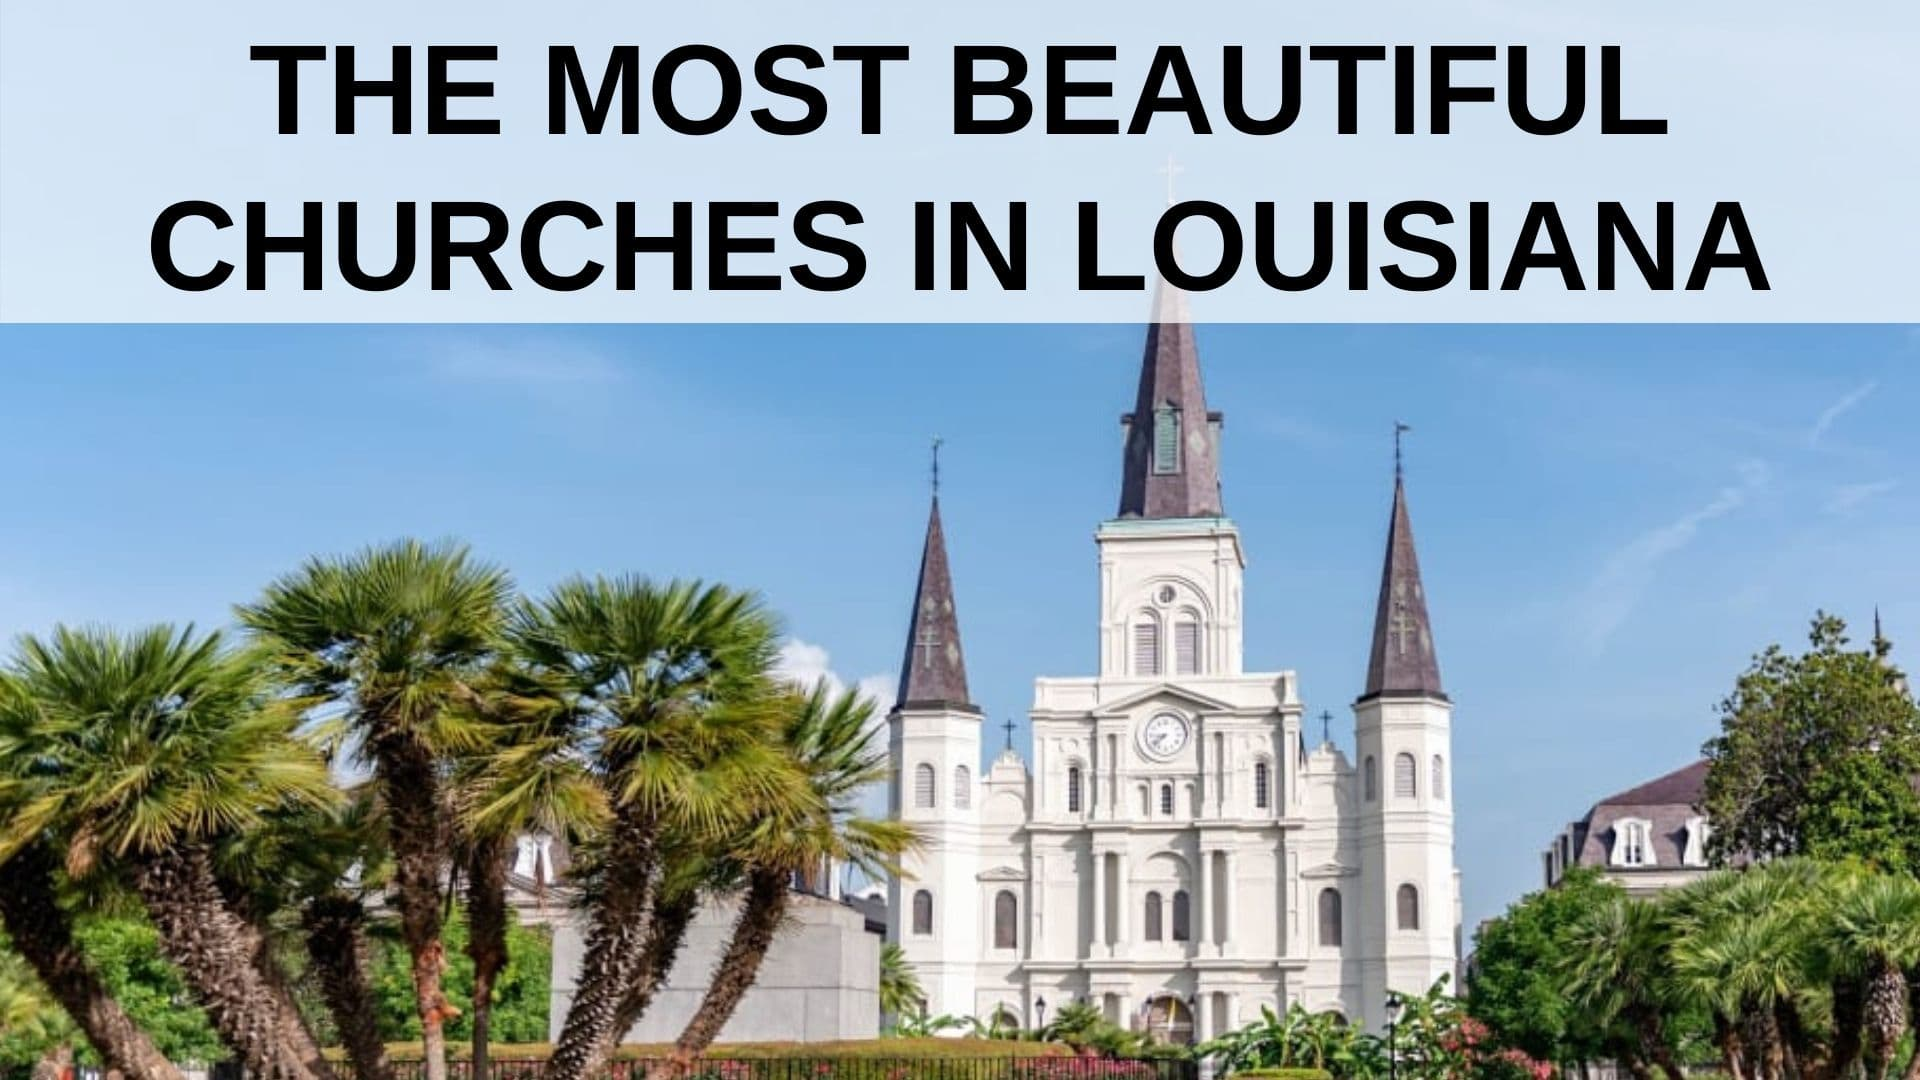 The Most Beautiful Churches in Louisiana